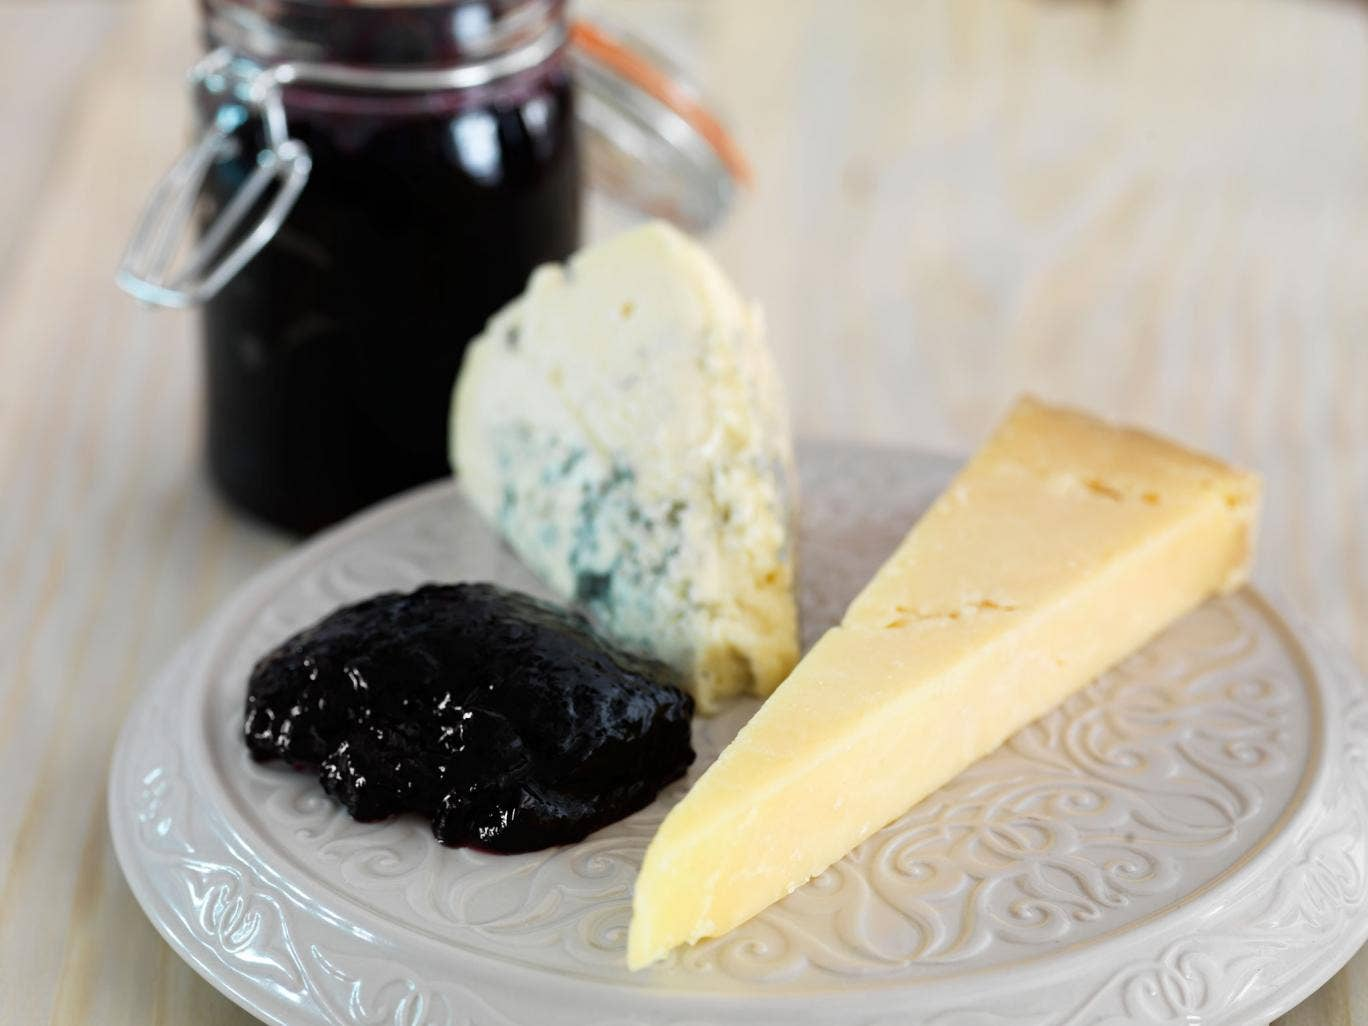 Blackcurrant chilli jelly goes well with cheese, pâtés and terrines